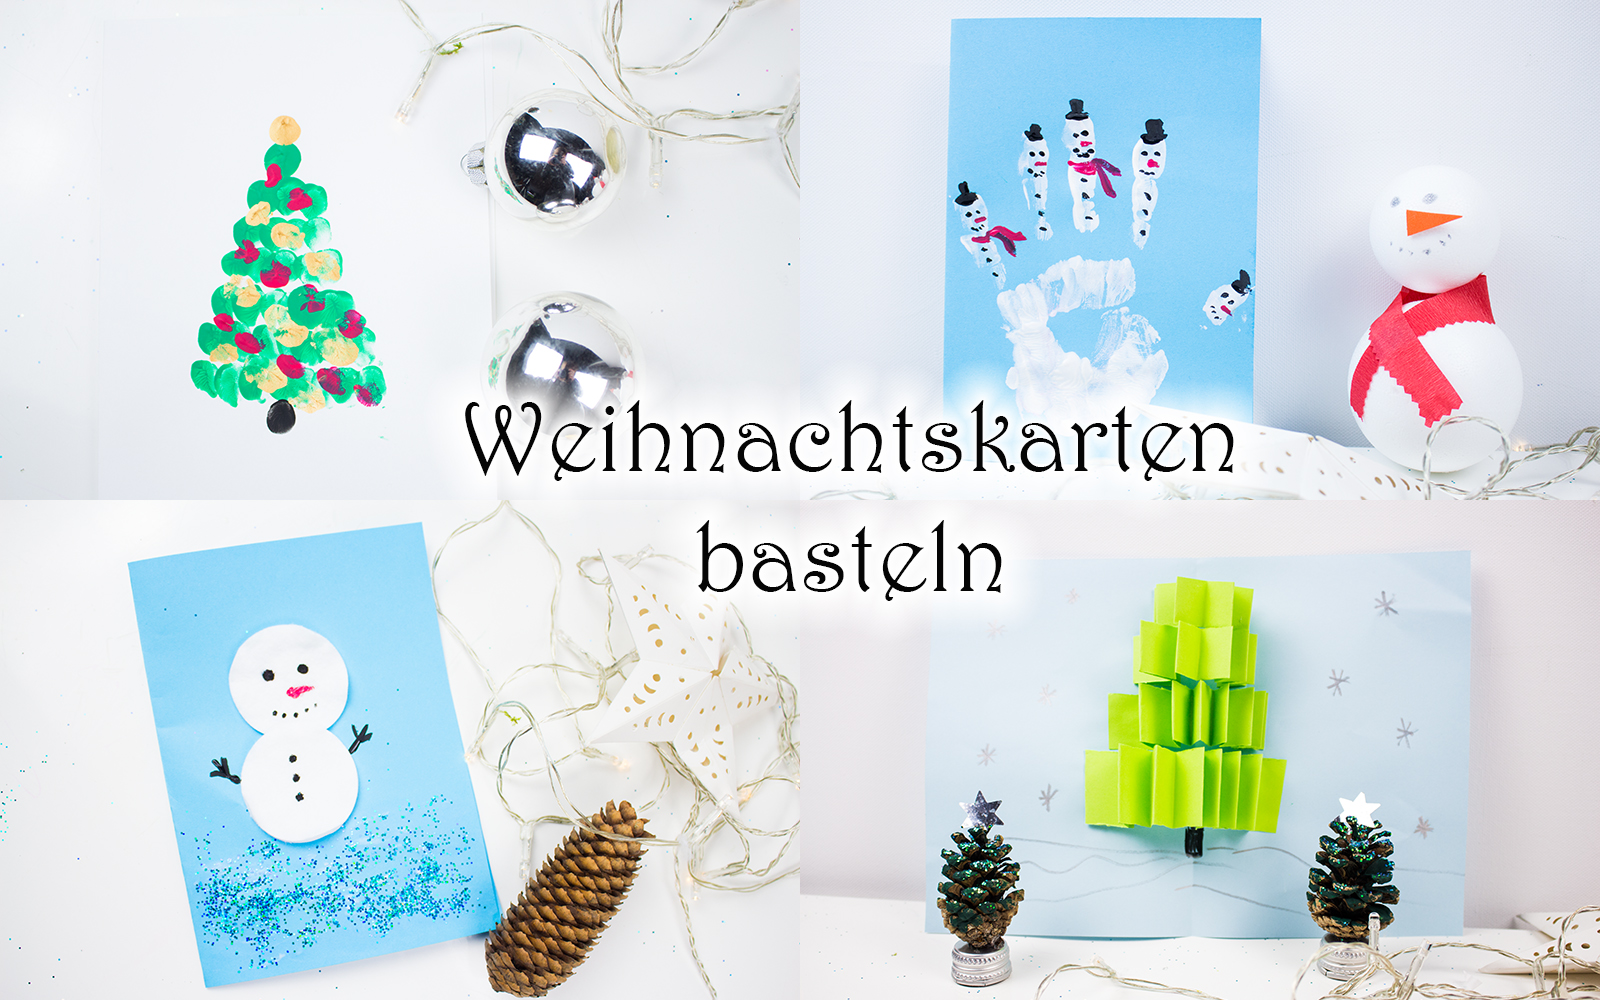 weihnachtskarten basteln mit kindern 5 schnelle ideen video mama kreativ. Black Bedroom Furniture Sets. Home Design Ideas